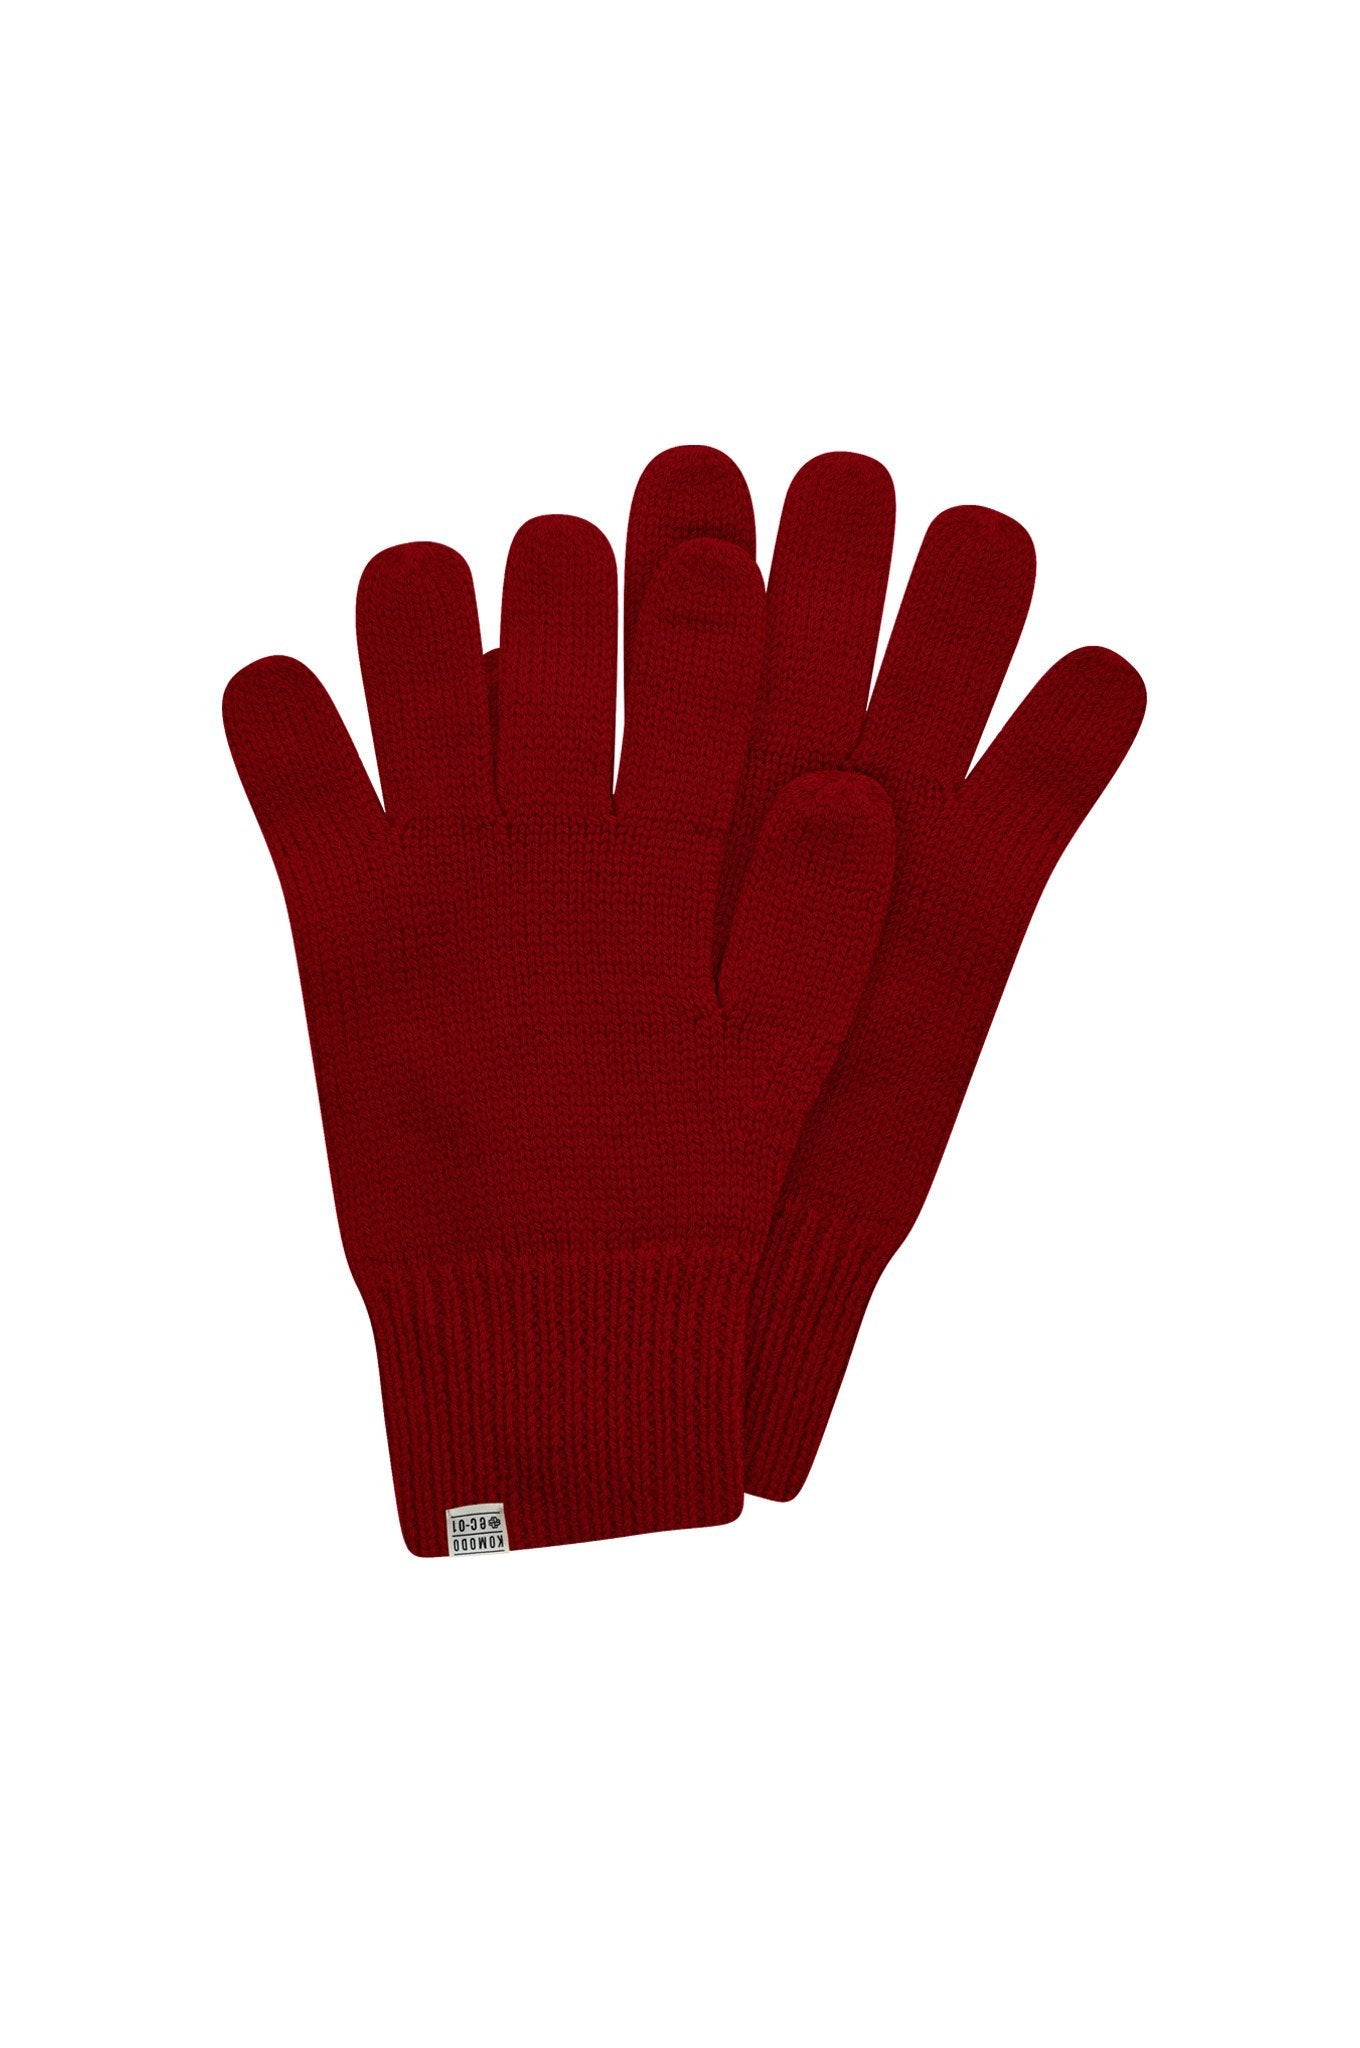 TORN Merino Wool Gloves Burnt Red - Komodo Fashion